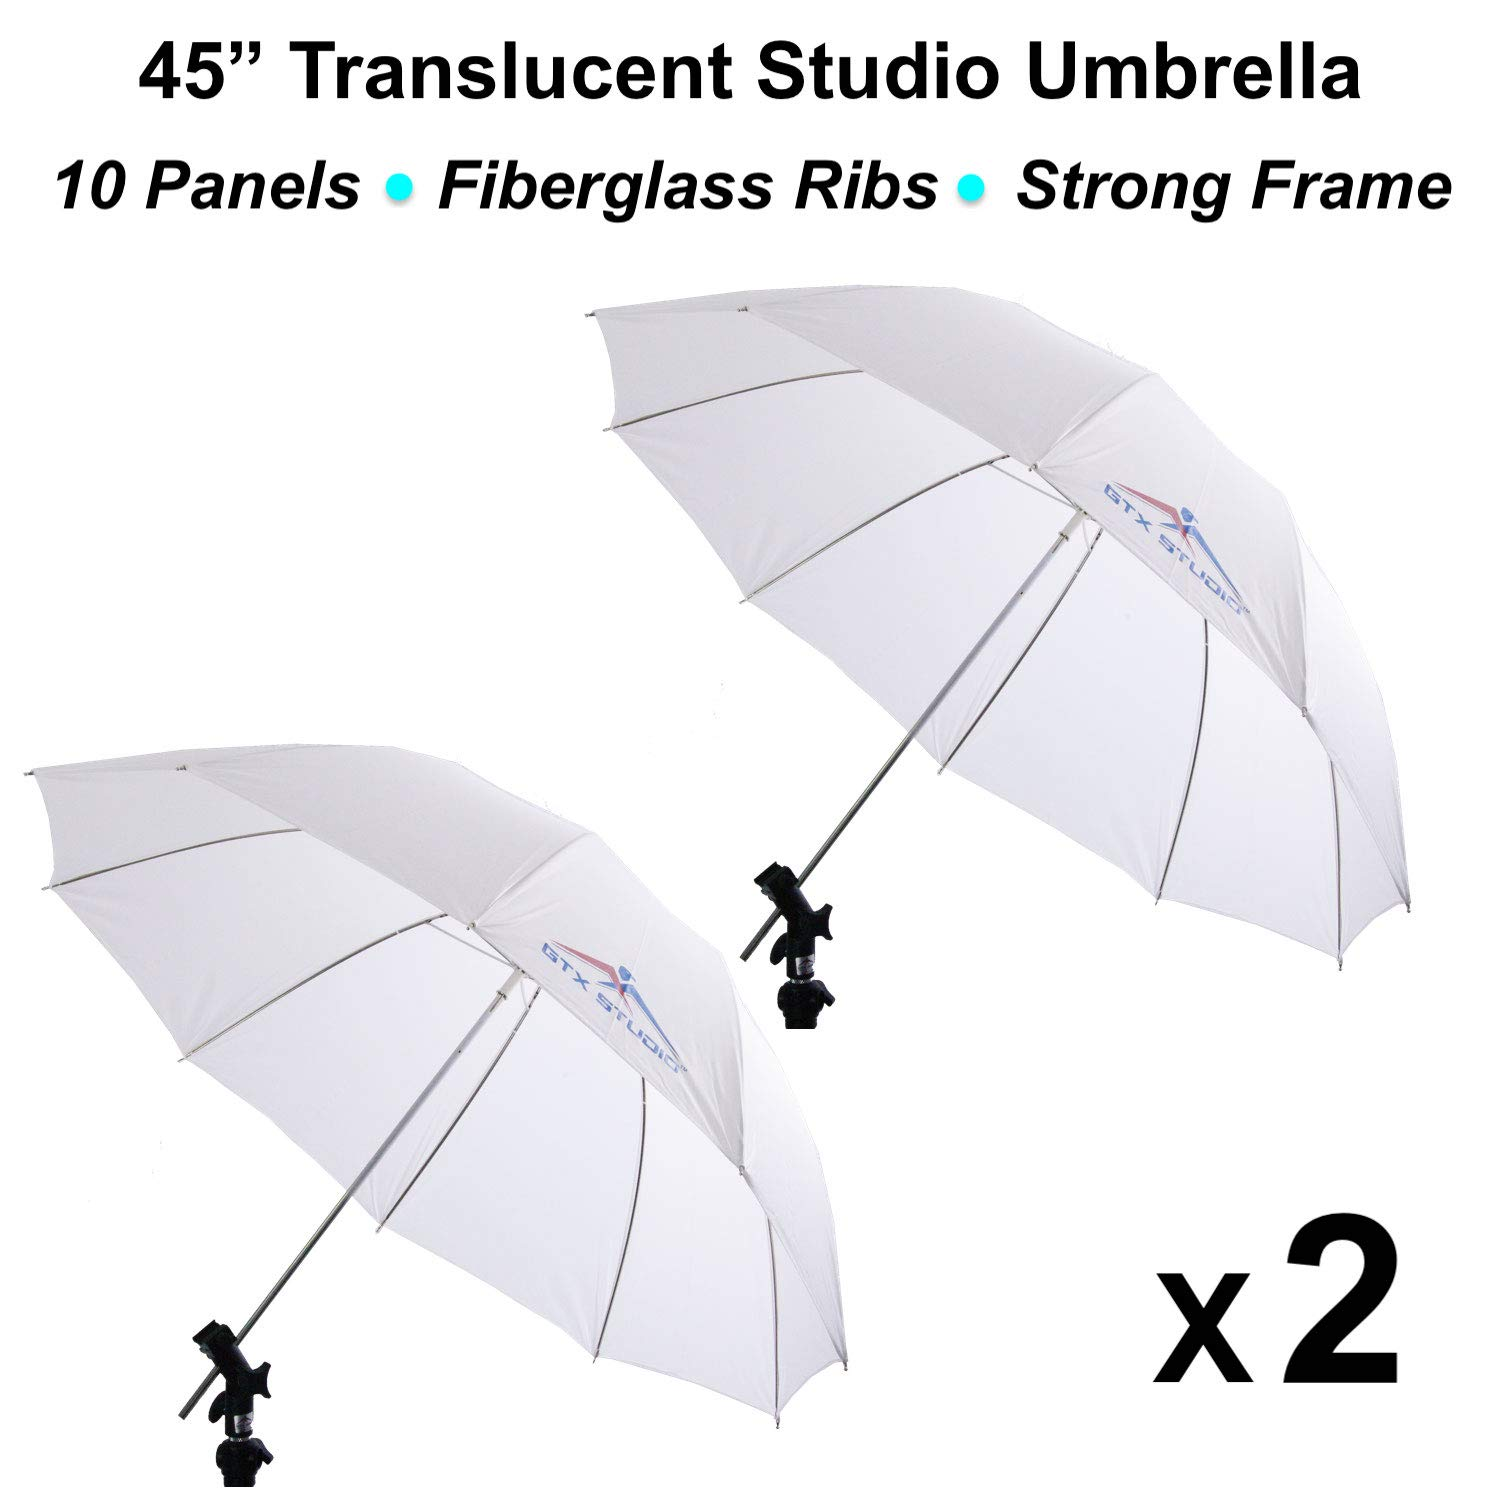 2 x 45 Translucent Photo Studio Umbrella w/ 10 Panel Fiberglass Rib Photography